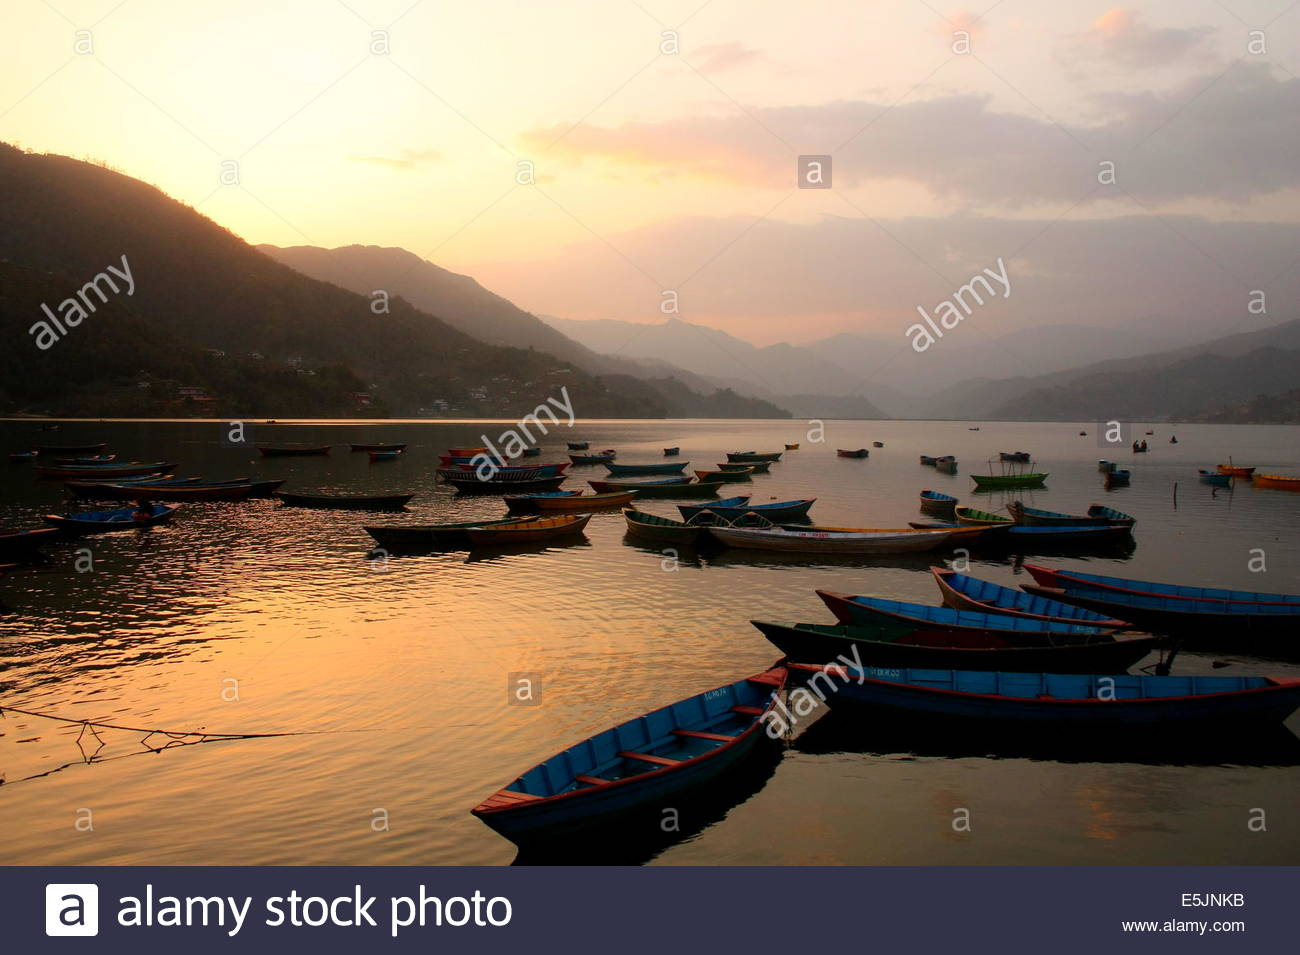 Rowing boats on Pokhara lake, Nepal at Sunset - Stock Image